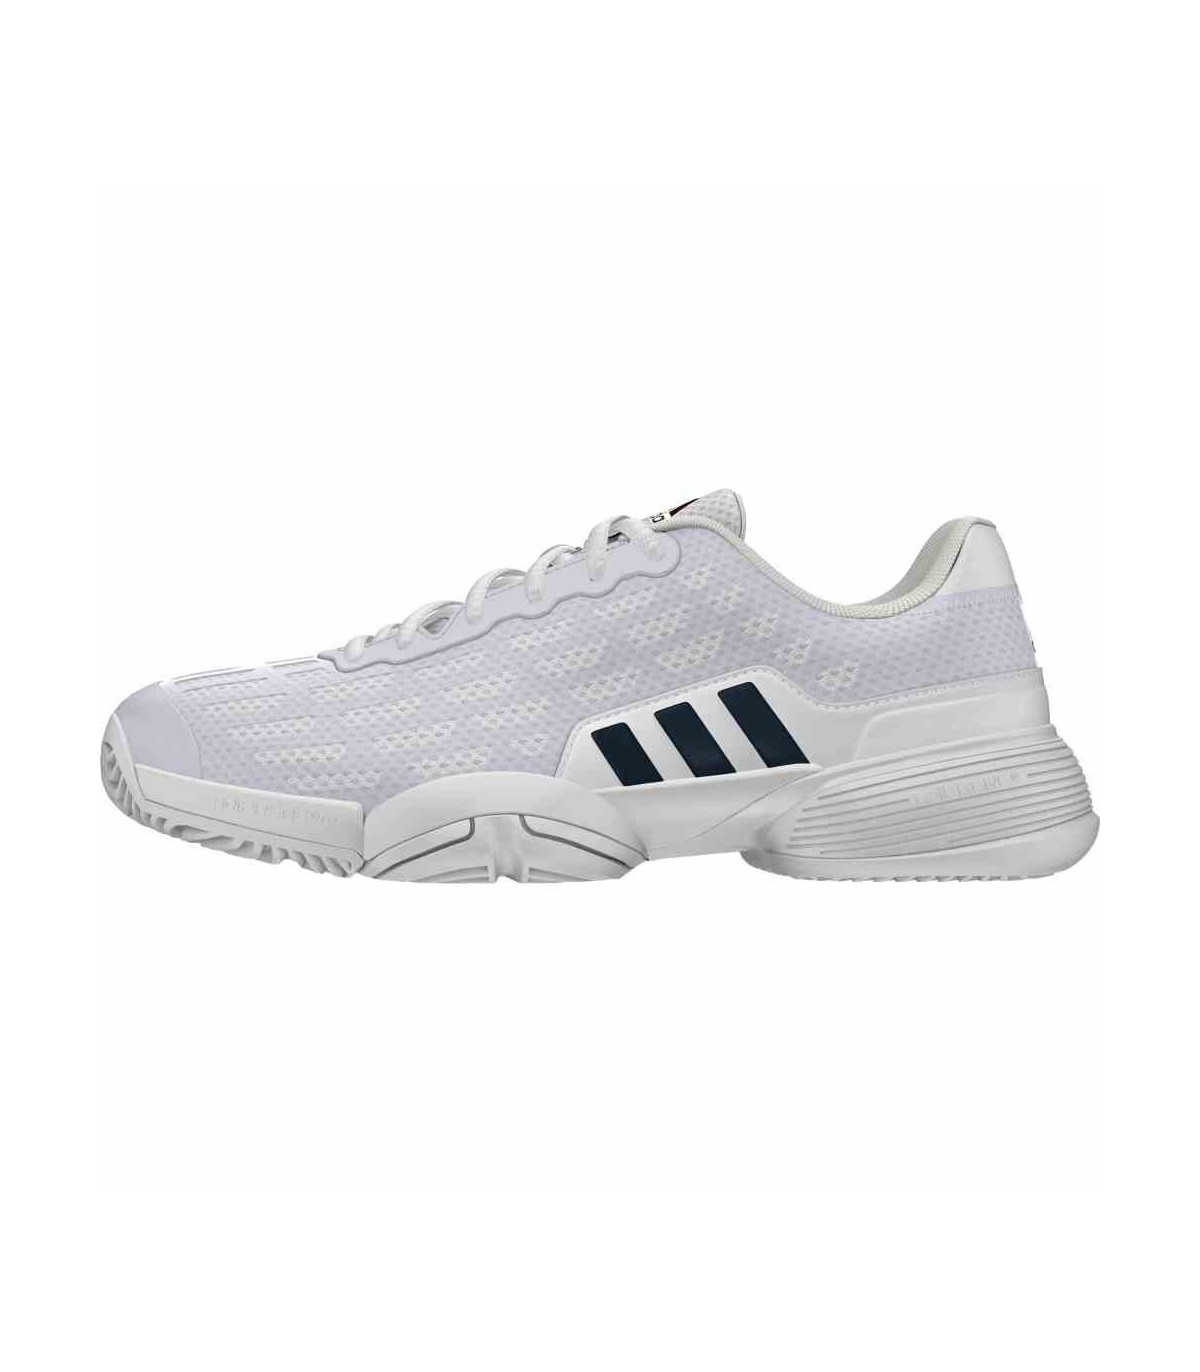 ... Adidas Barricade 2016 XJ Junior White Squash shoes · Adidas ... 85f795e5f97